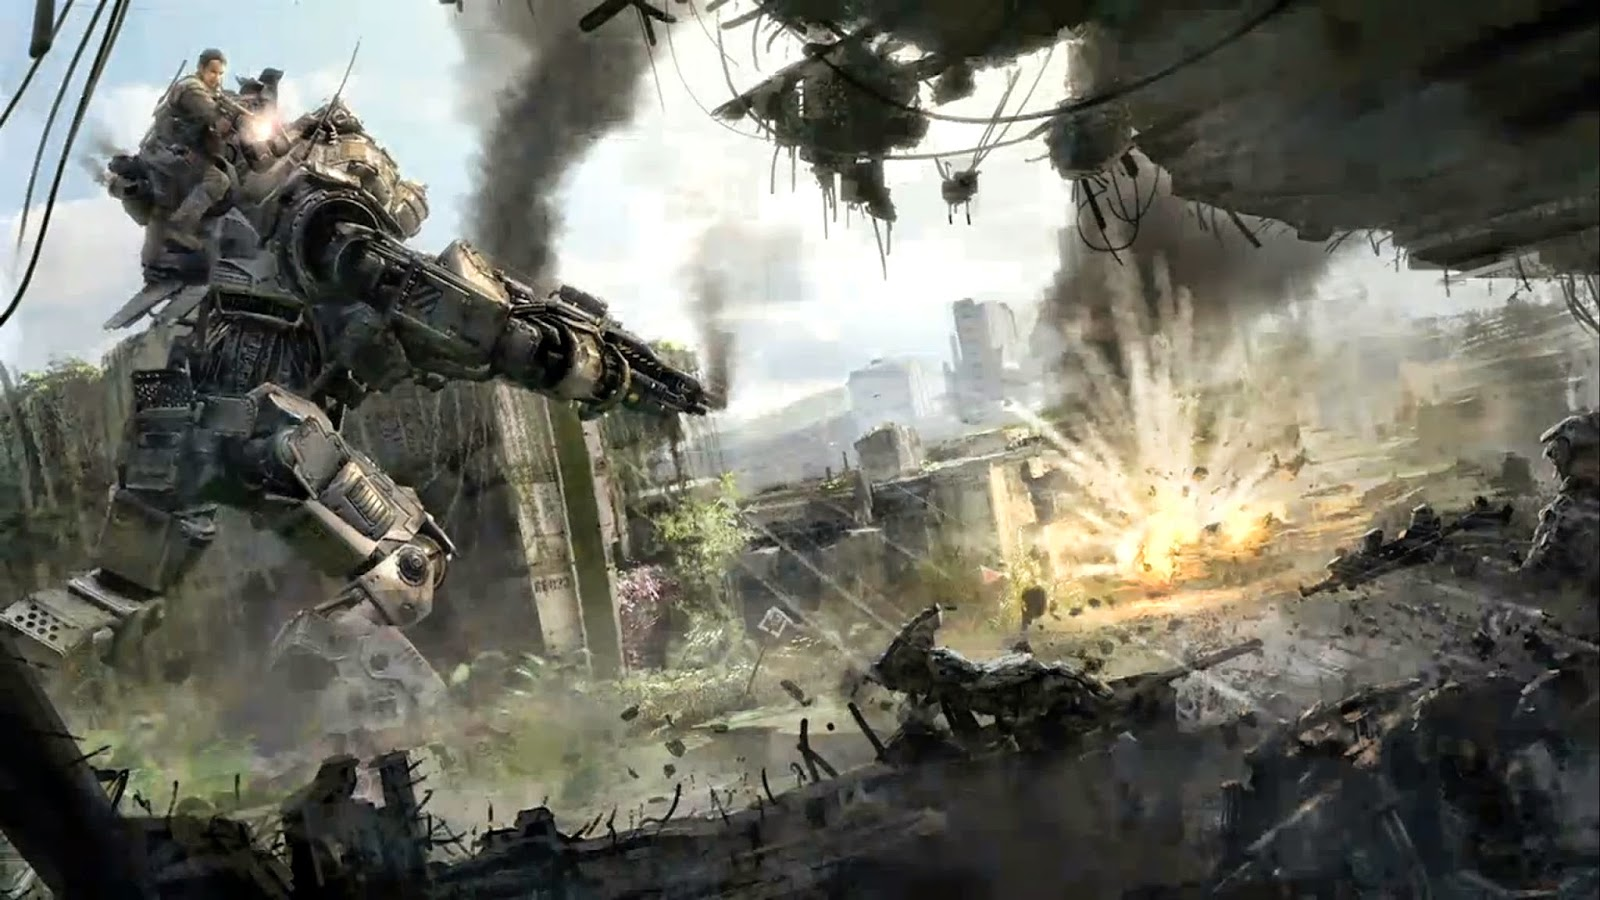 You Can Download Wallapper Action Game Titanfall Wallpaper HD For Free In HereFinally Dont Forget To Share